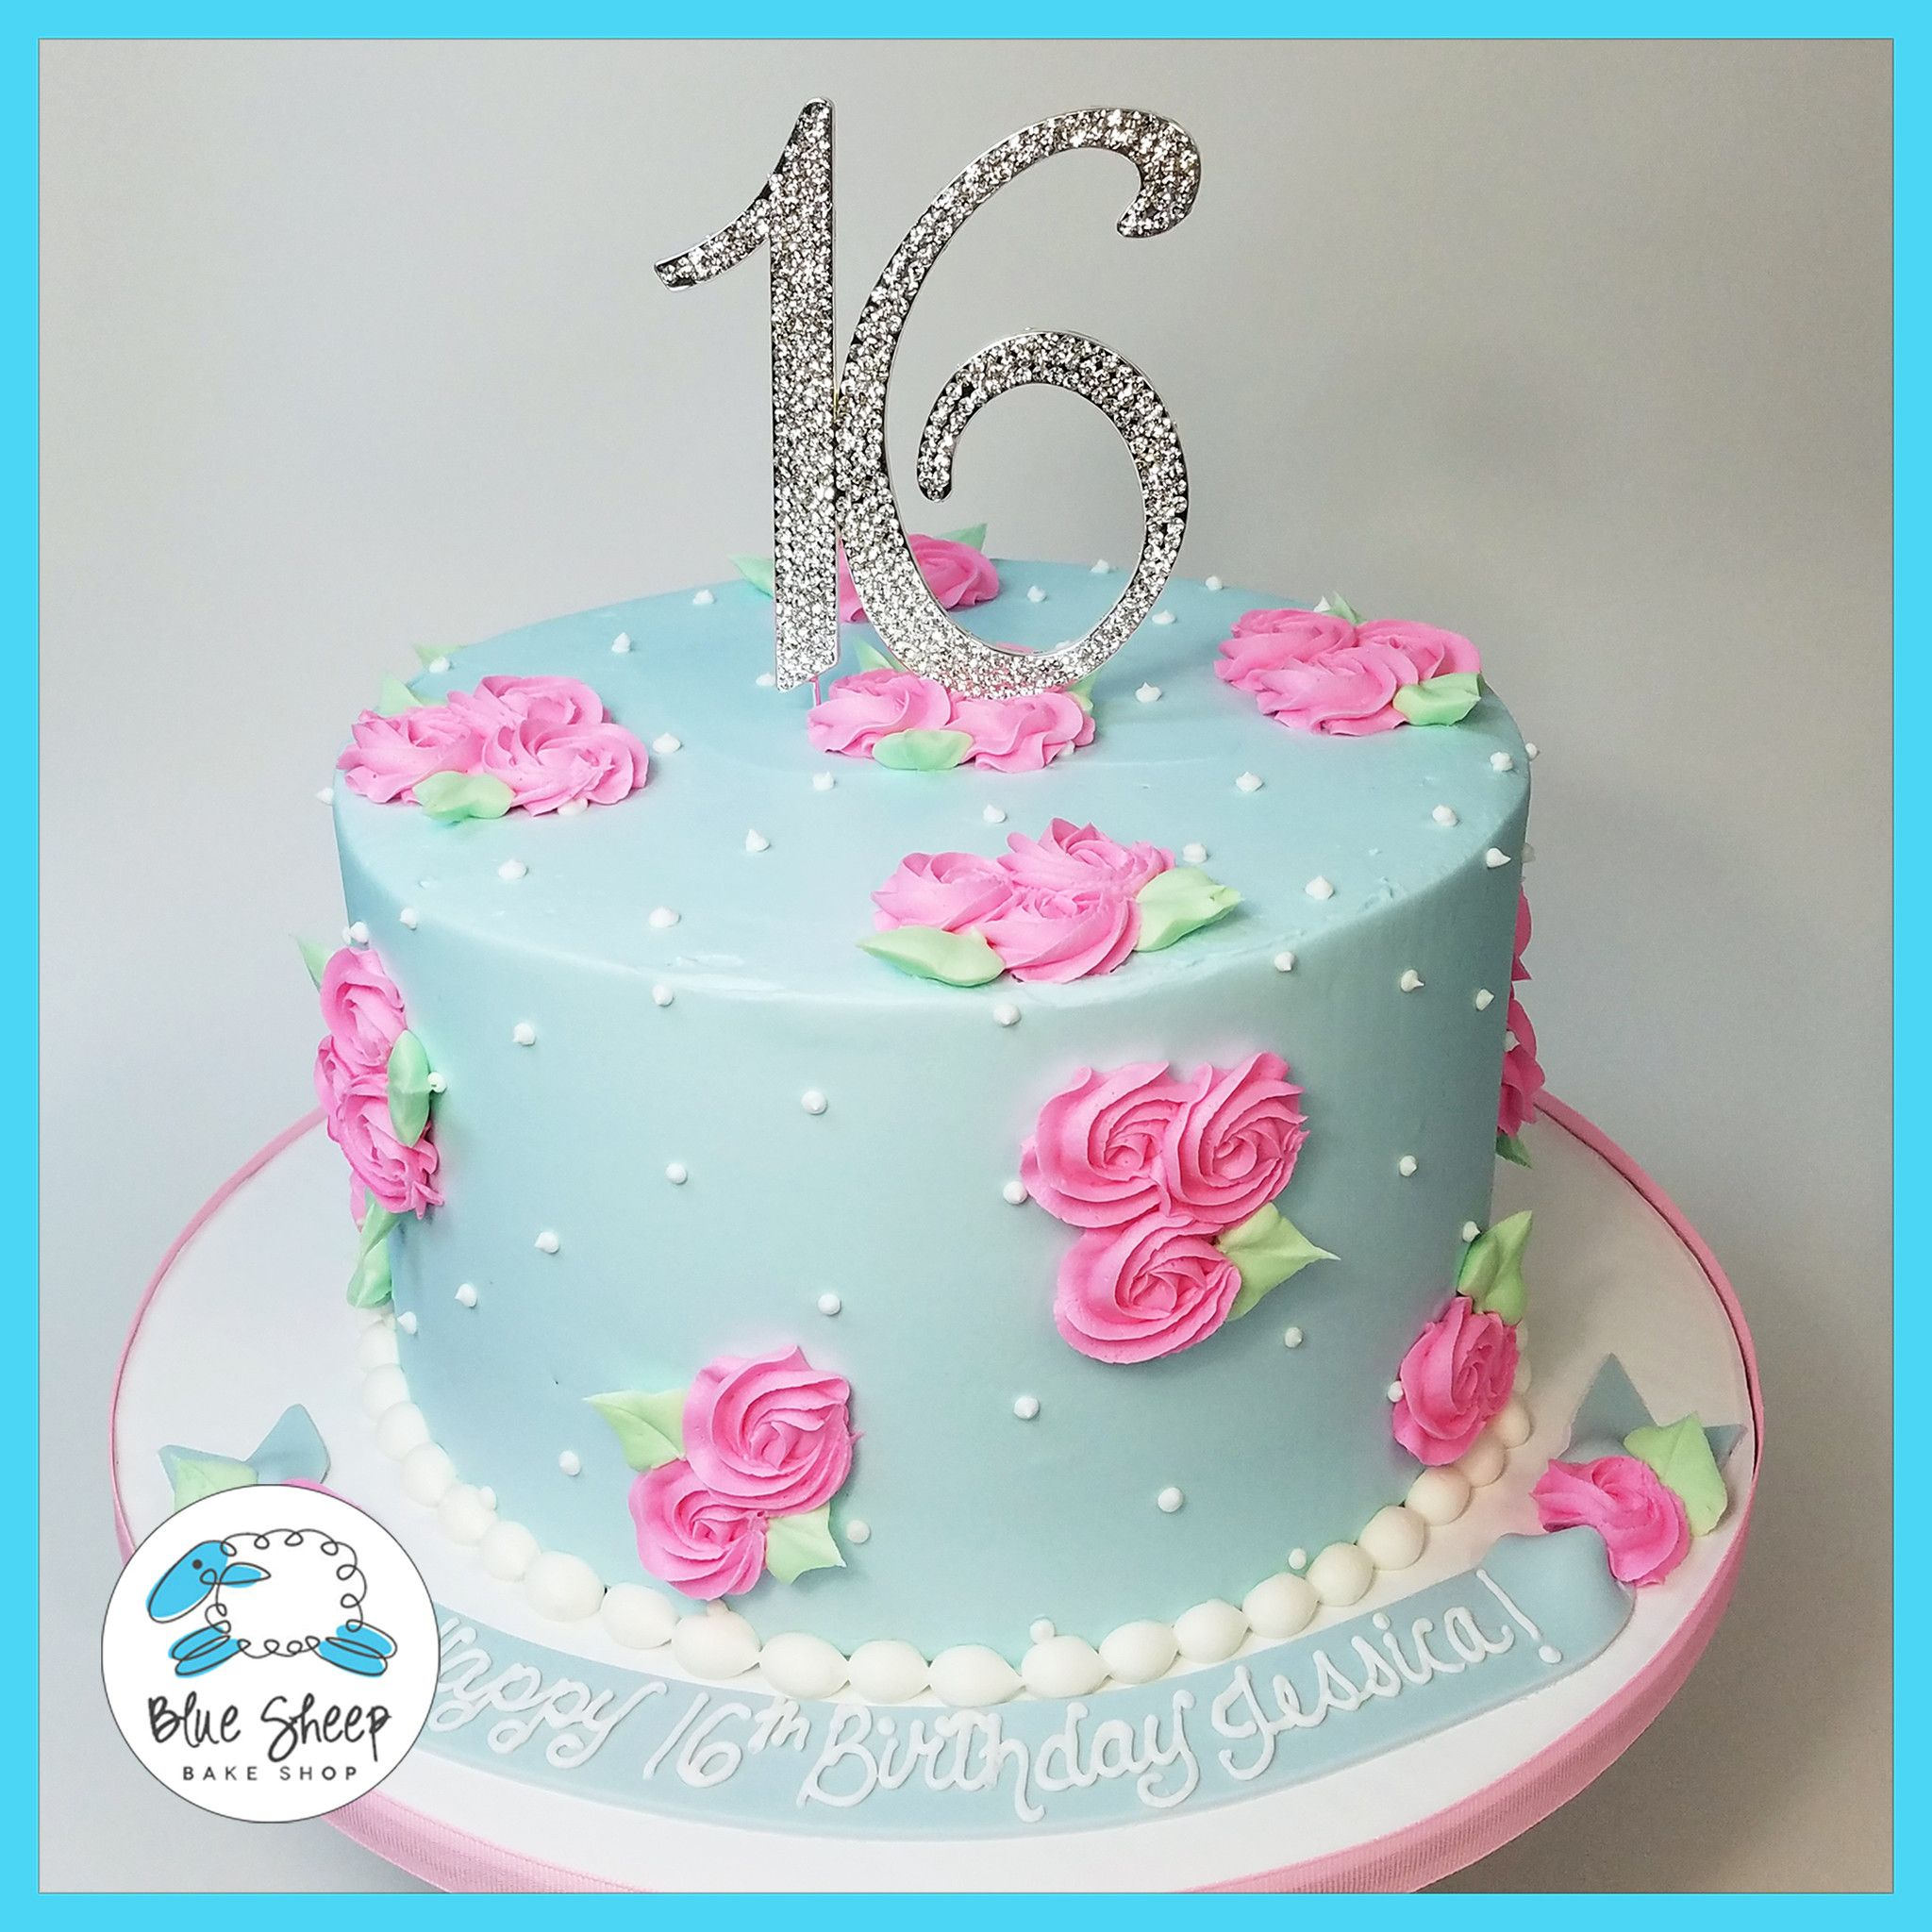 Alice In Wonderland Rosette Birthday Cake  Blue Sheep Bake Shop - Sweet 16 birthday cakes